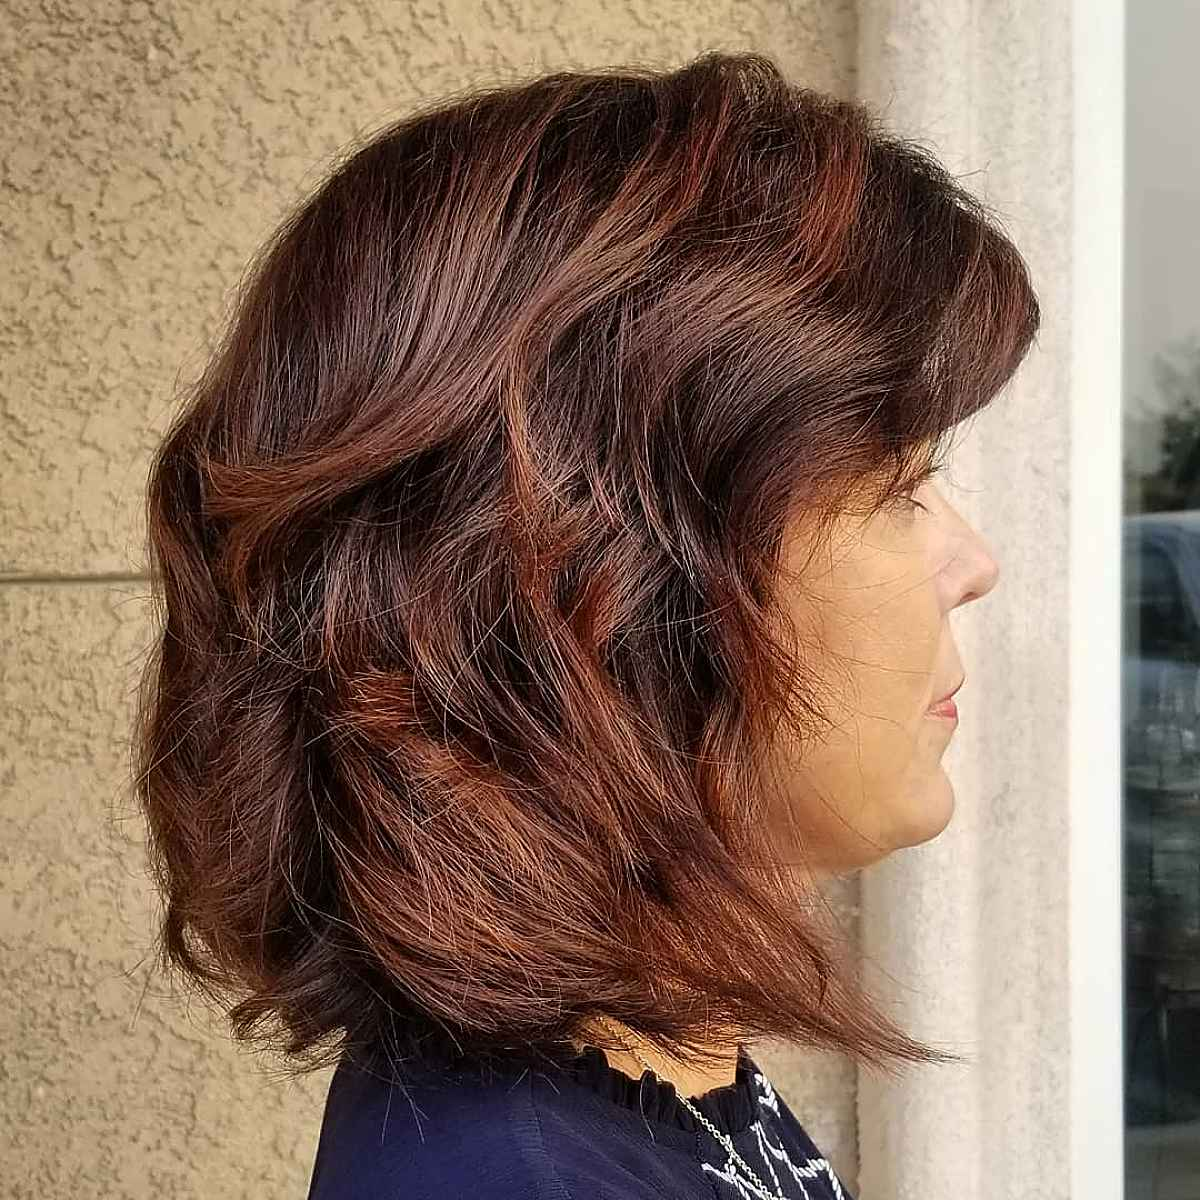 Long Bob Hairstyle with Rich Burgundy Highlights